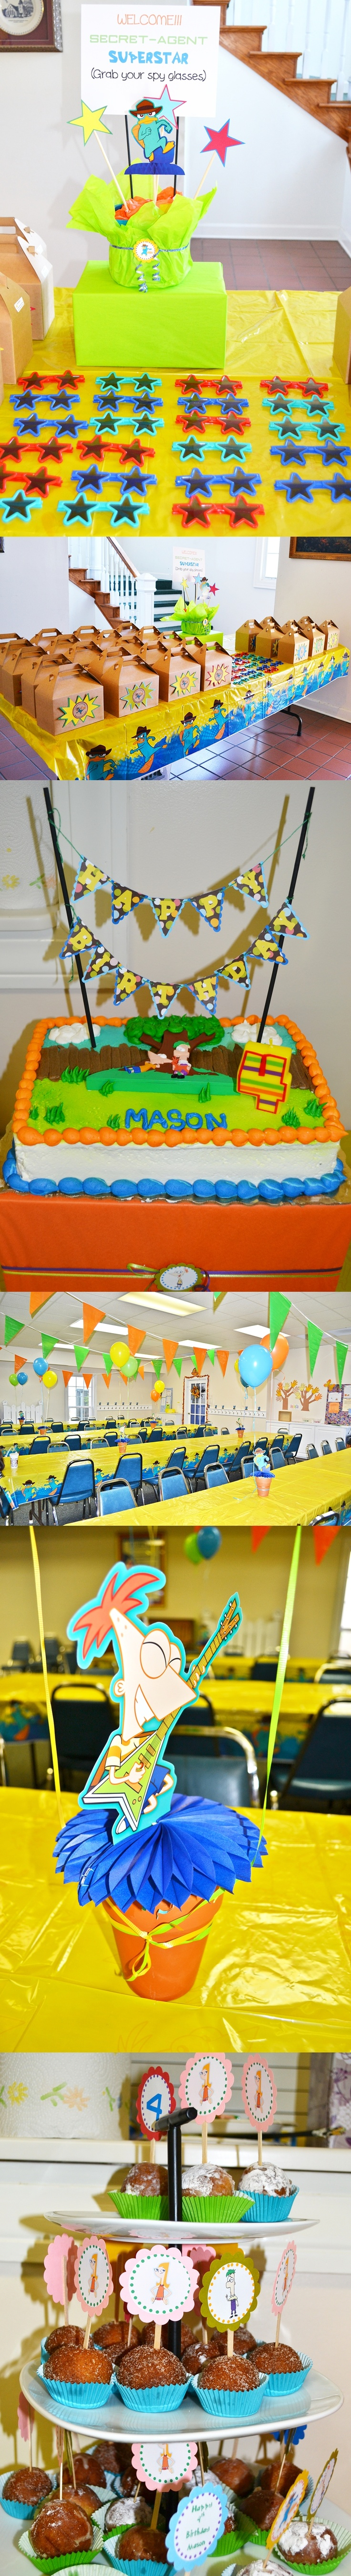 Phineas and Ferb Party!!!